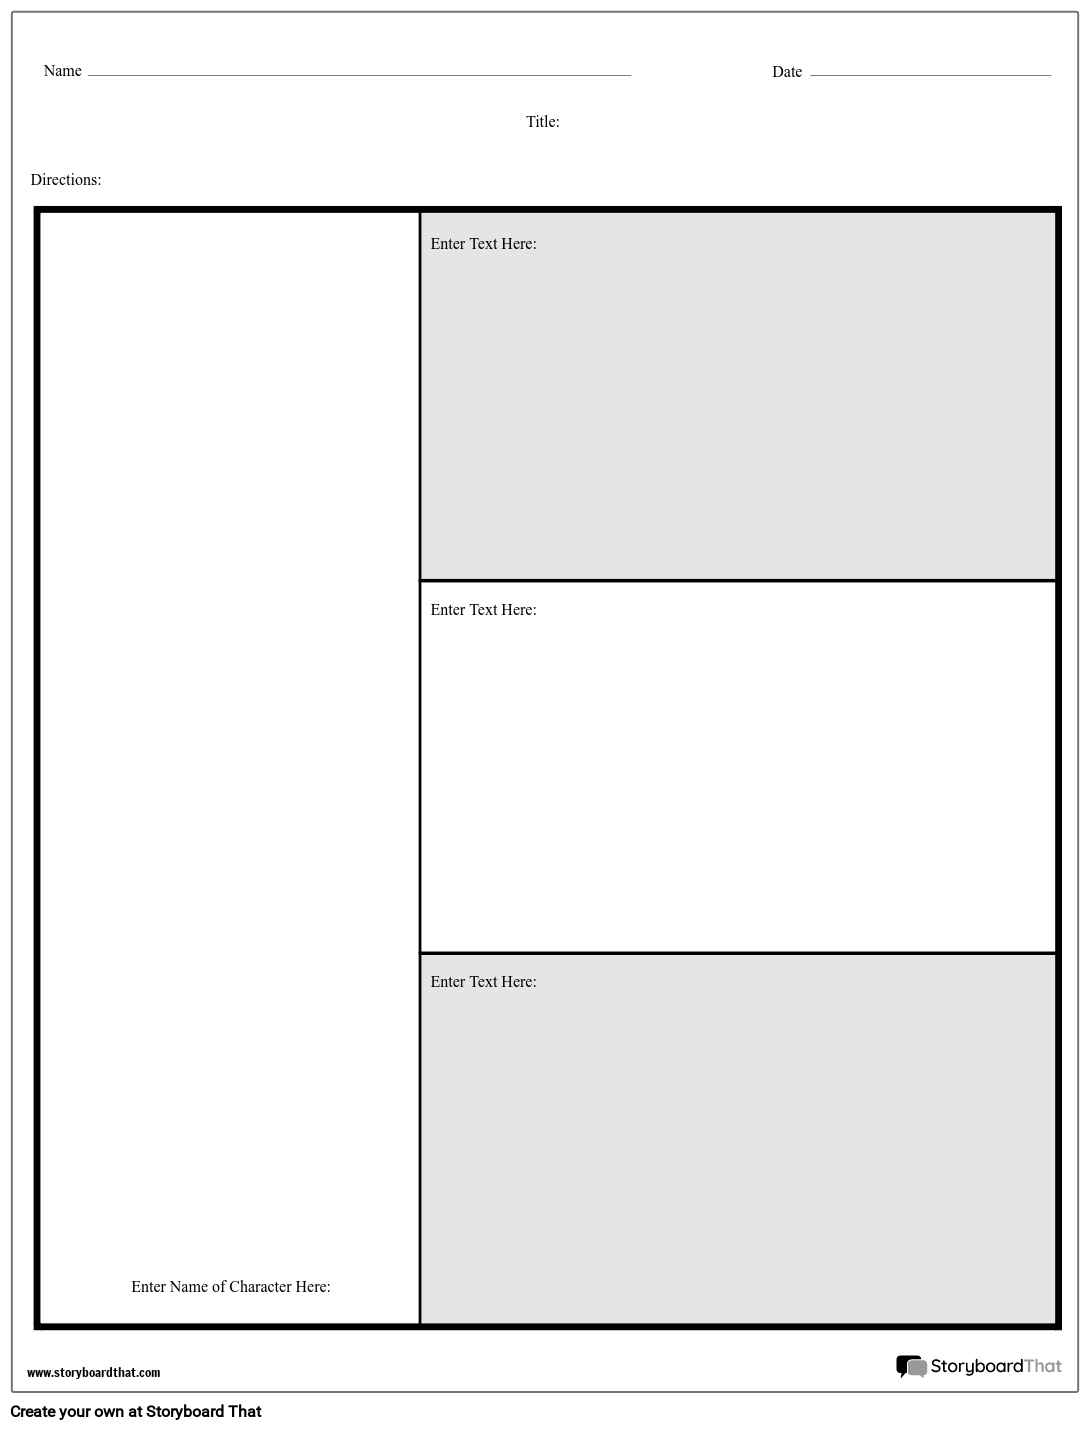 Character Chart 3 Questions Storyboard By Worksheet Templates